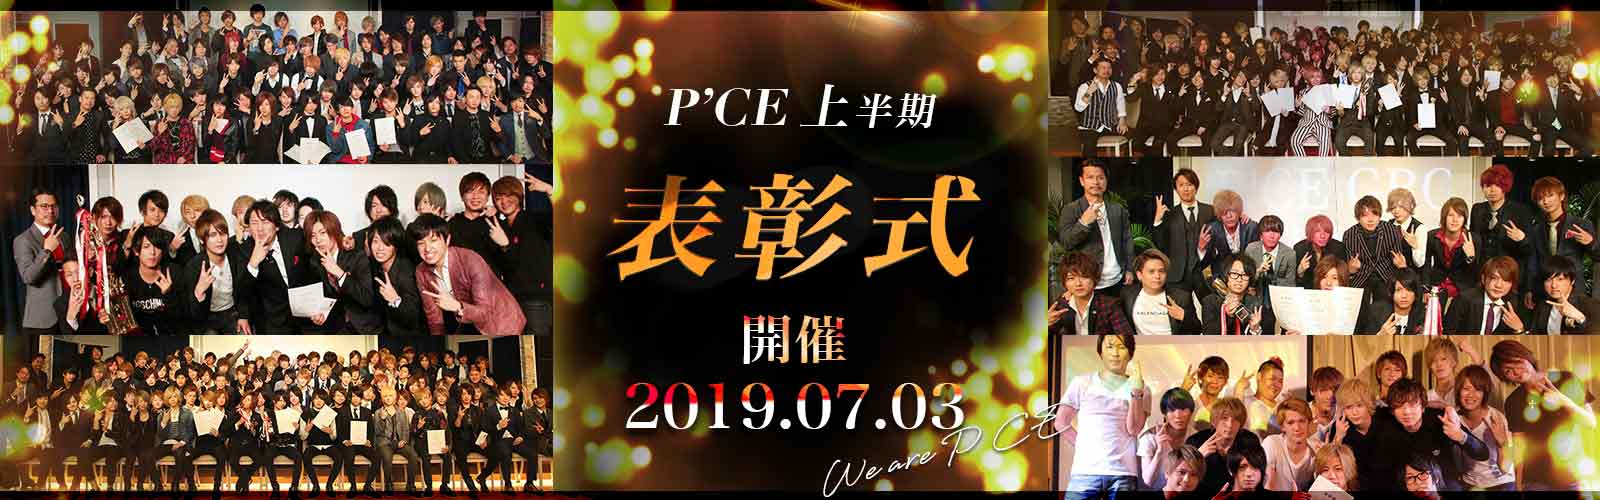 P'CE Group上半期結果表彰式2019.07.03